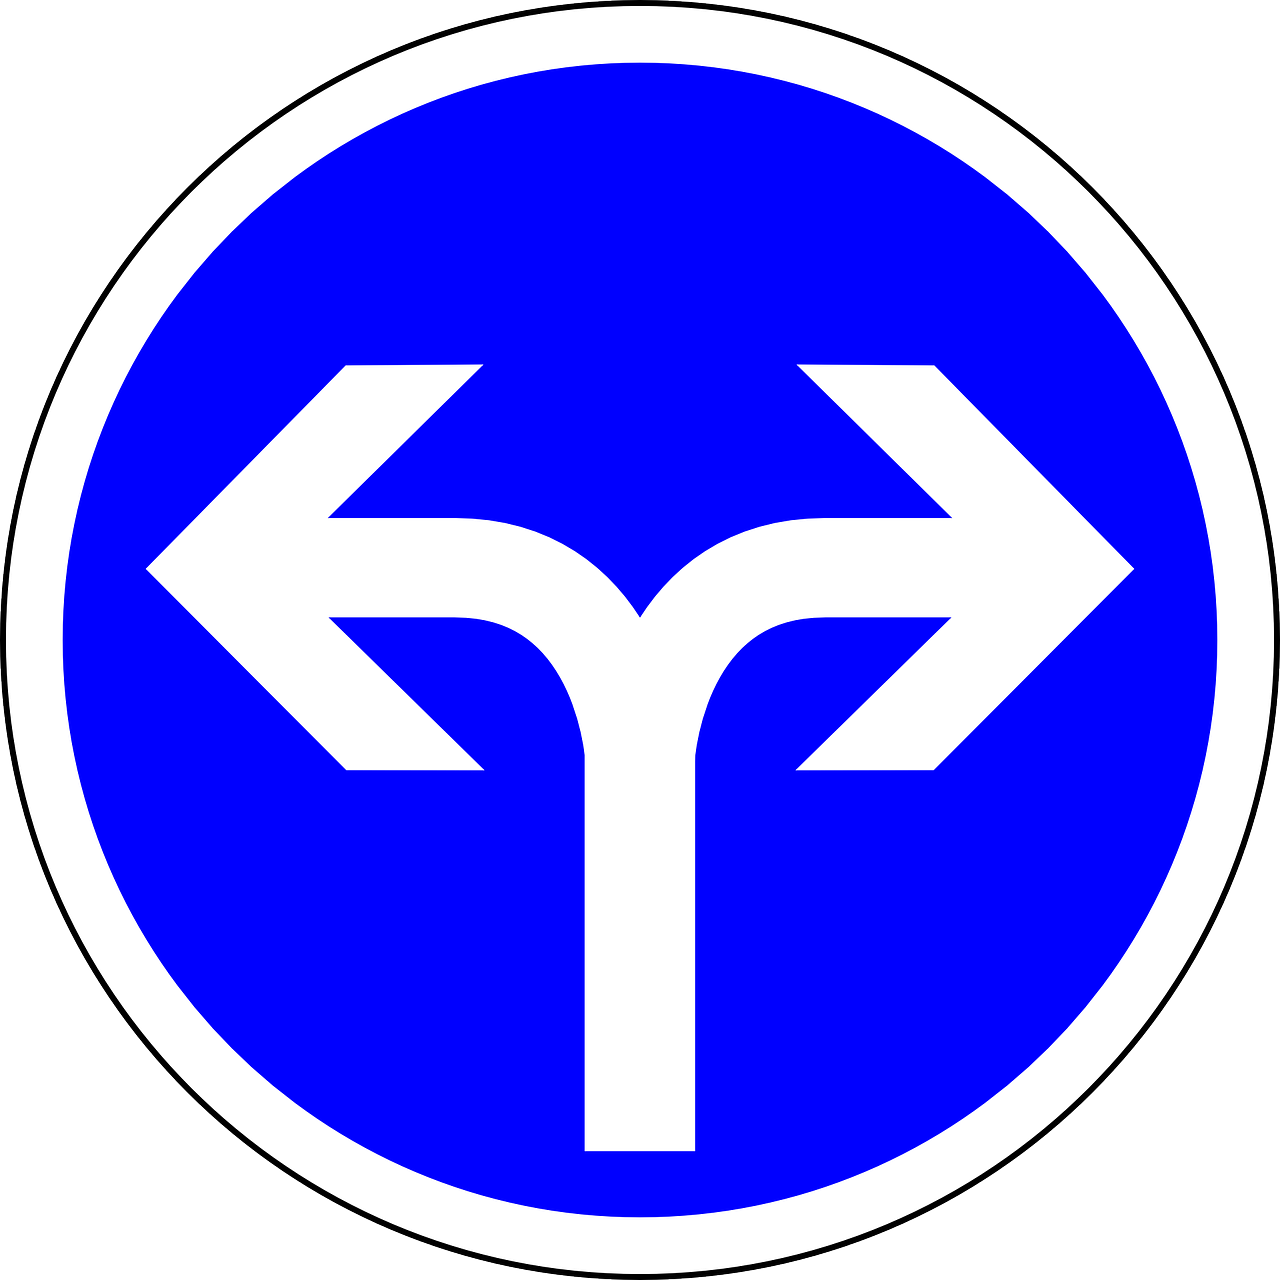 go-left-or-right-160713_1280